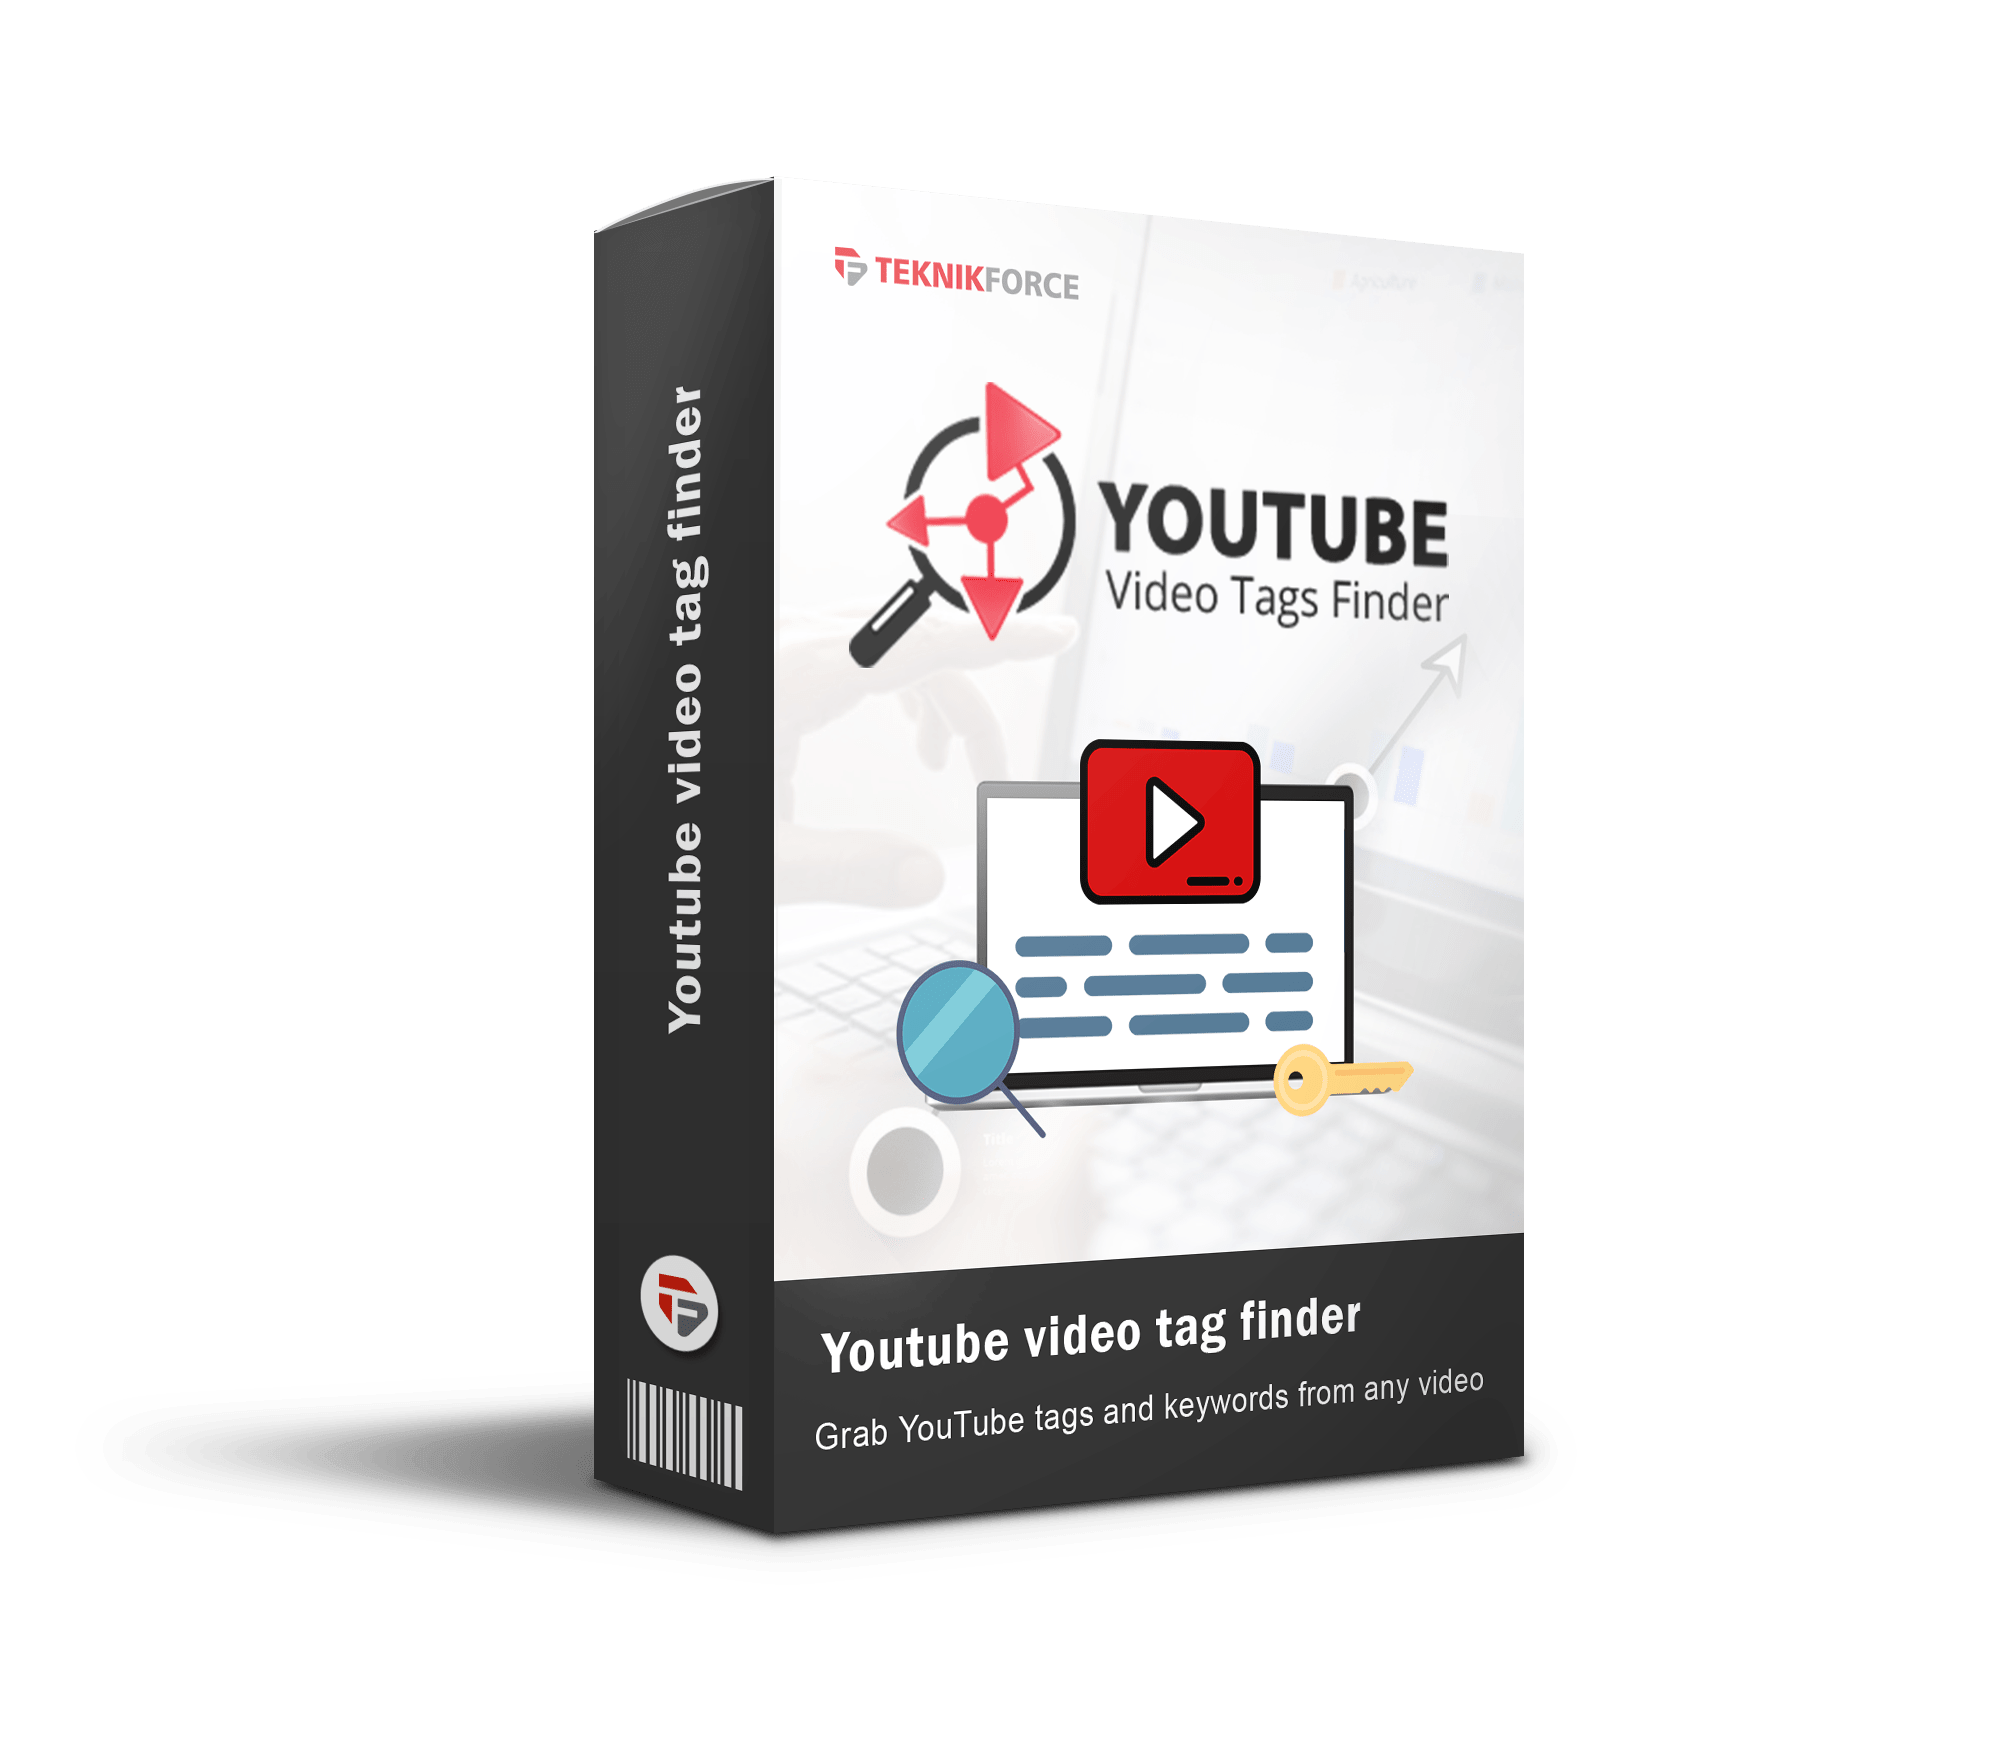 YouTube Video Tags Finder